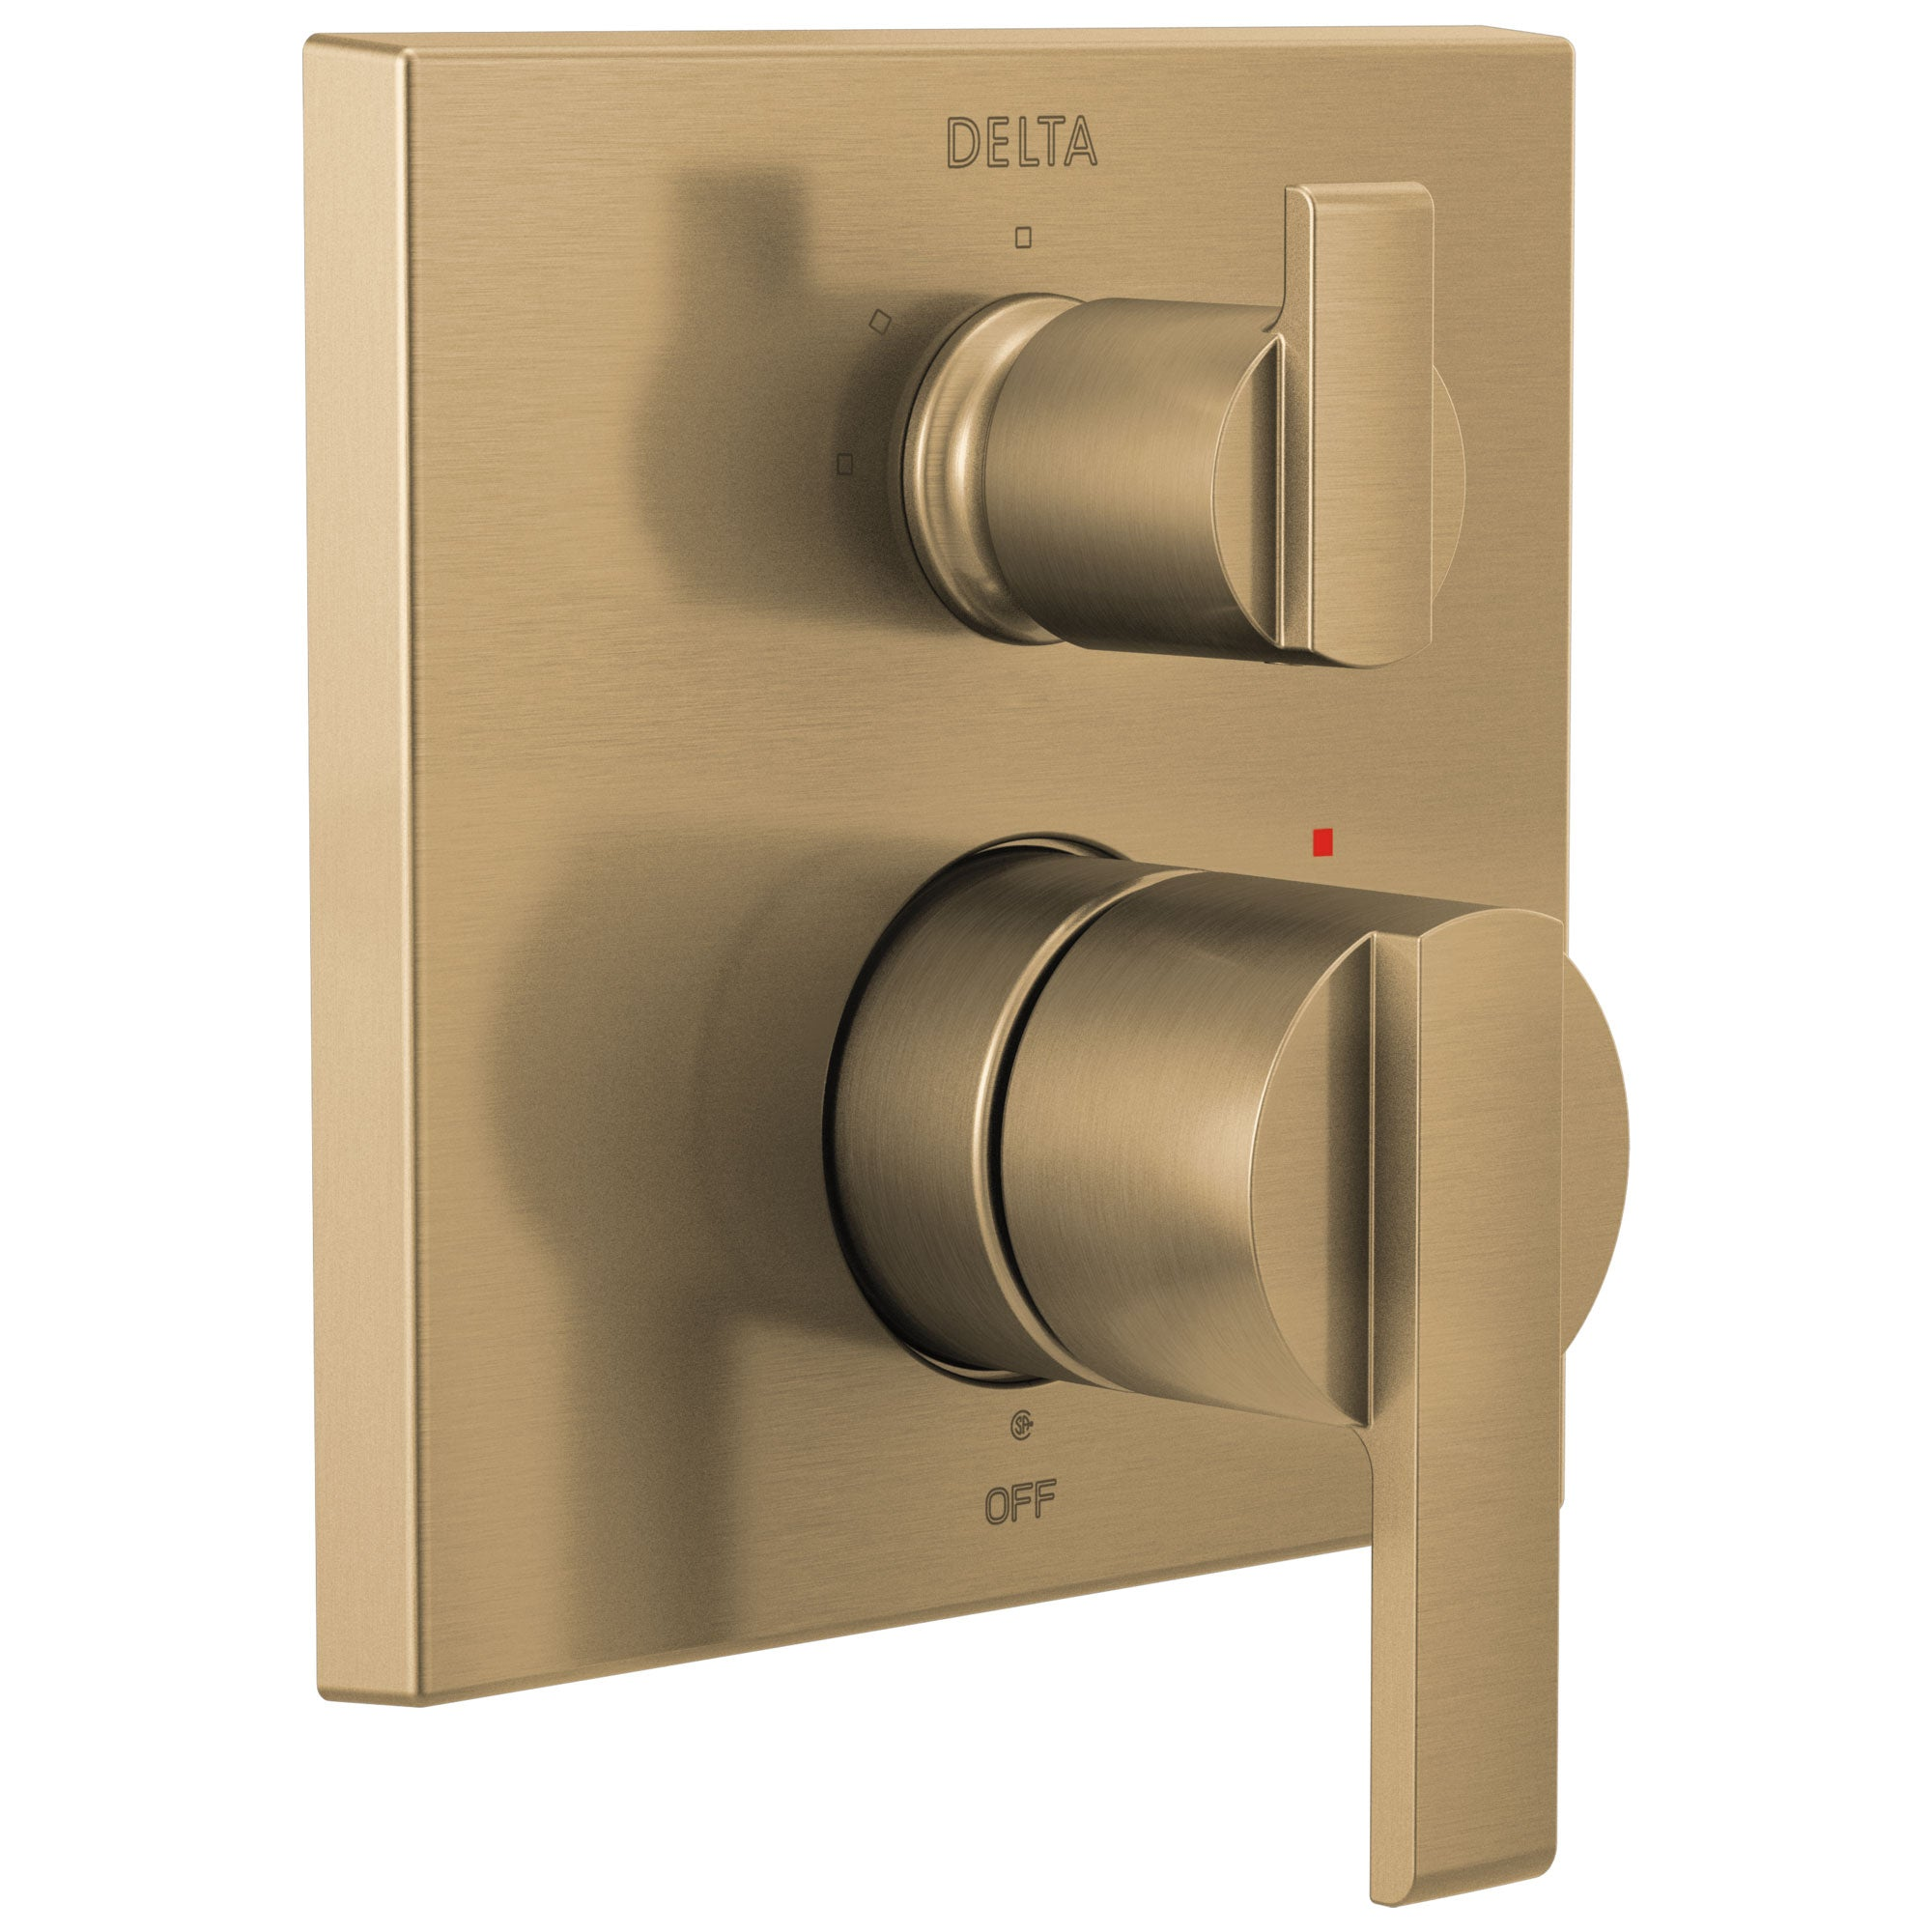 Delta Ara Champagne Bronze Finish Angular Modern 14 Series Shower System Control with 3-Setting Integrated Diverter Includes Valve and Handles D3776V